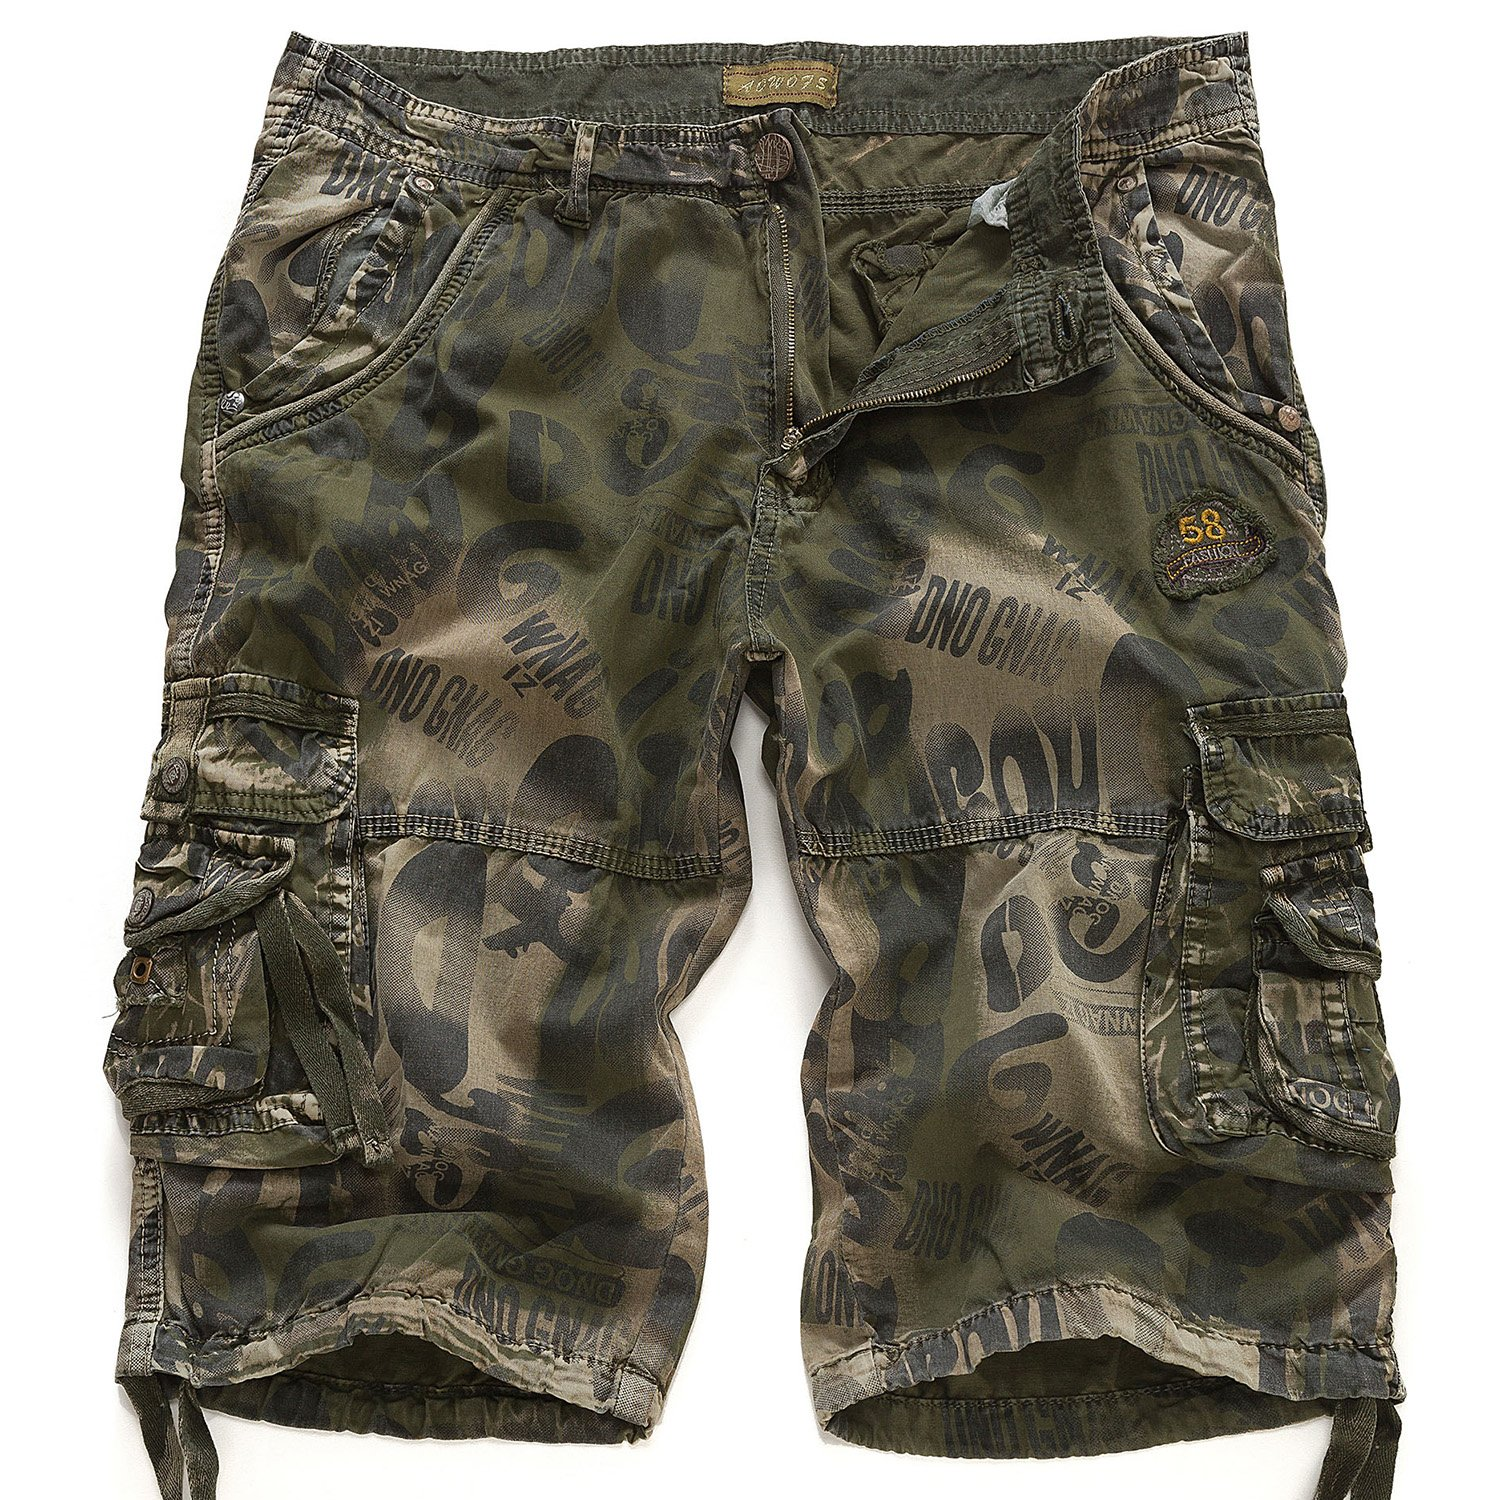 EAGLIDE Men's Twill Loose Fit Athletic Camouflage Cotton Pockets Cargo Shorts